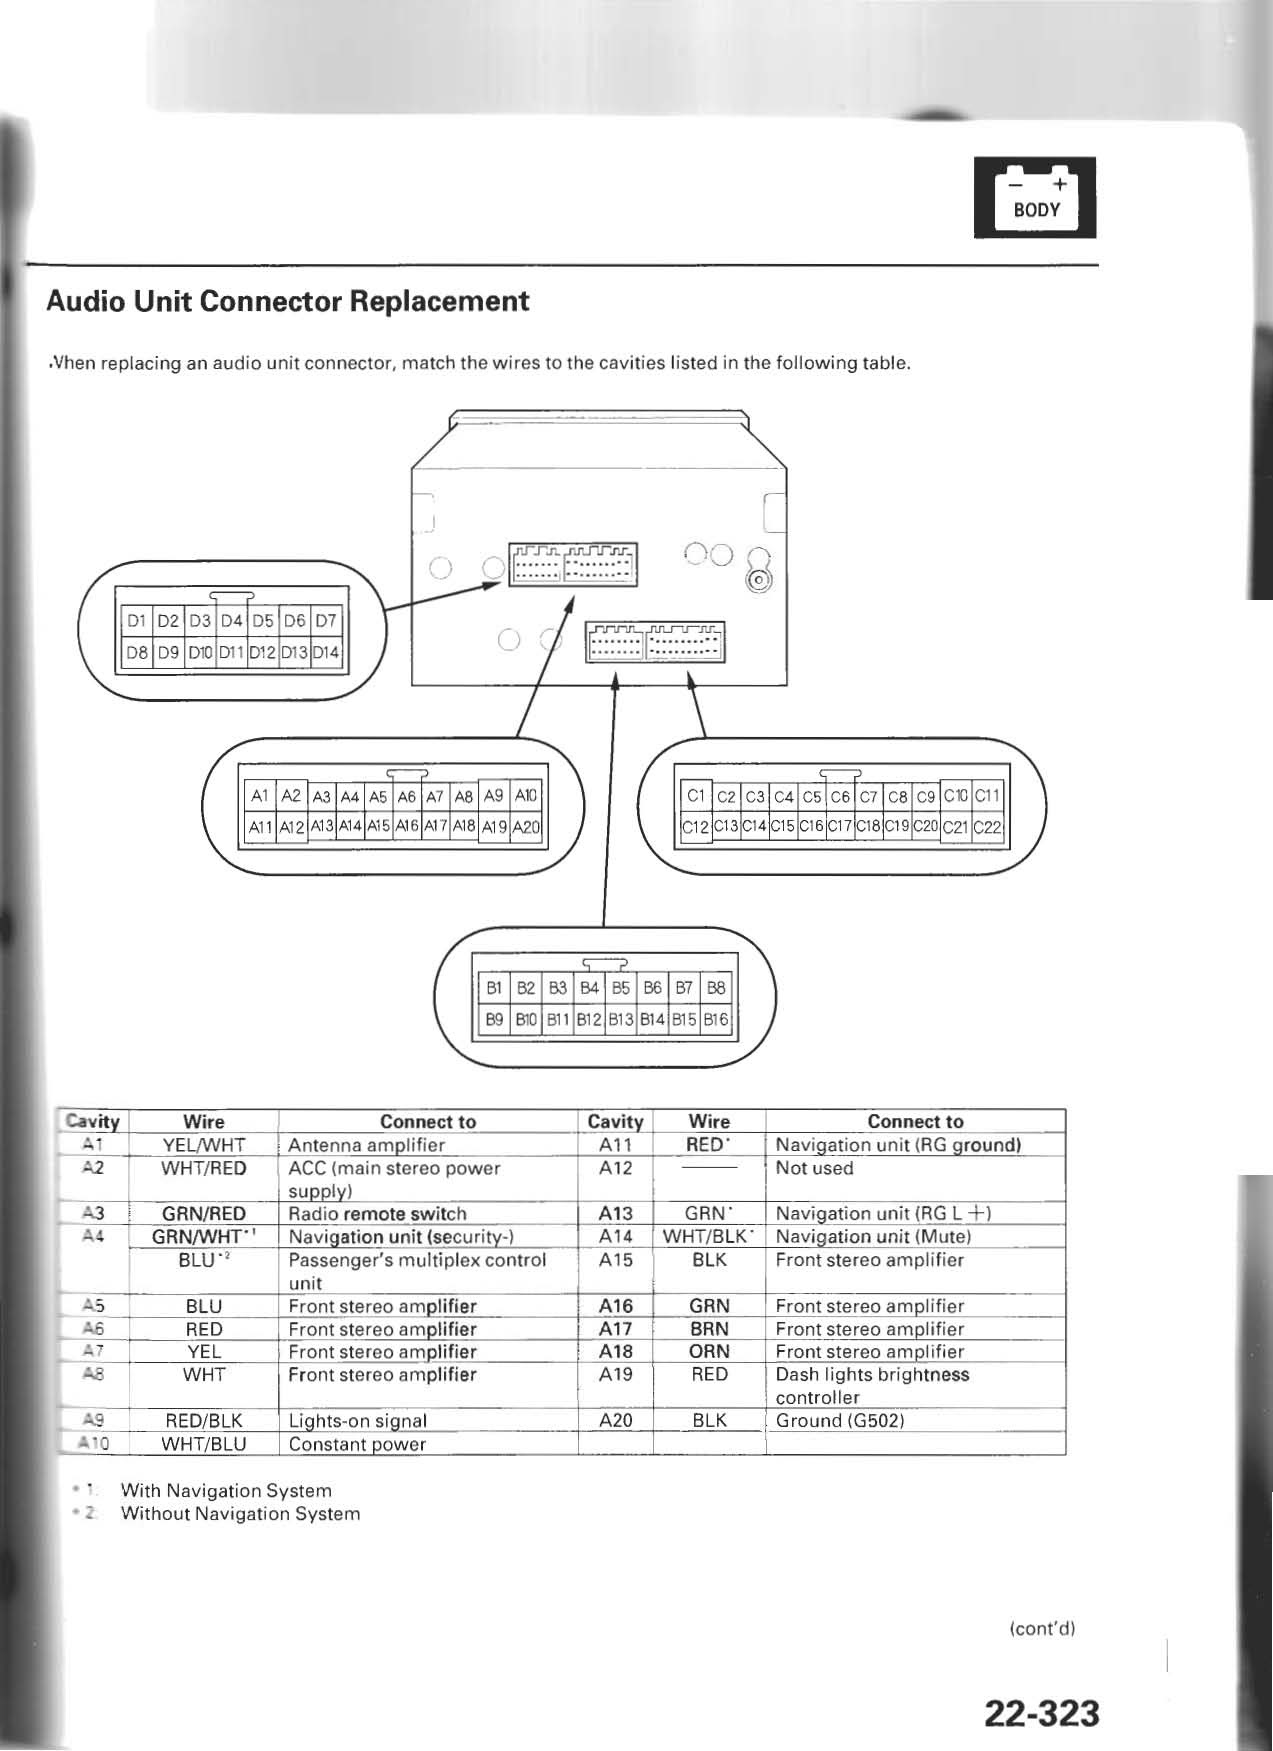 acura tl speaker wiring diagram diy solar panel 2001 mdx hp photosmart printer